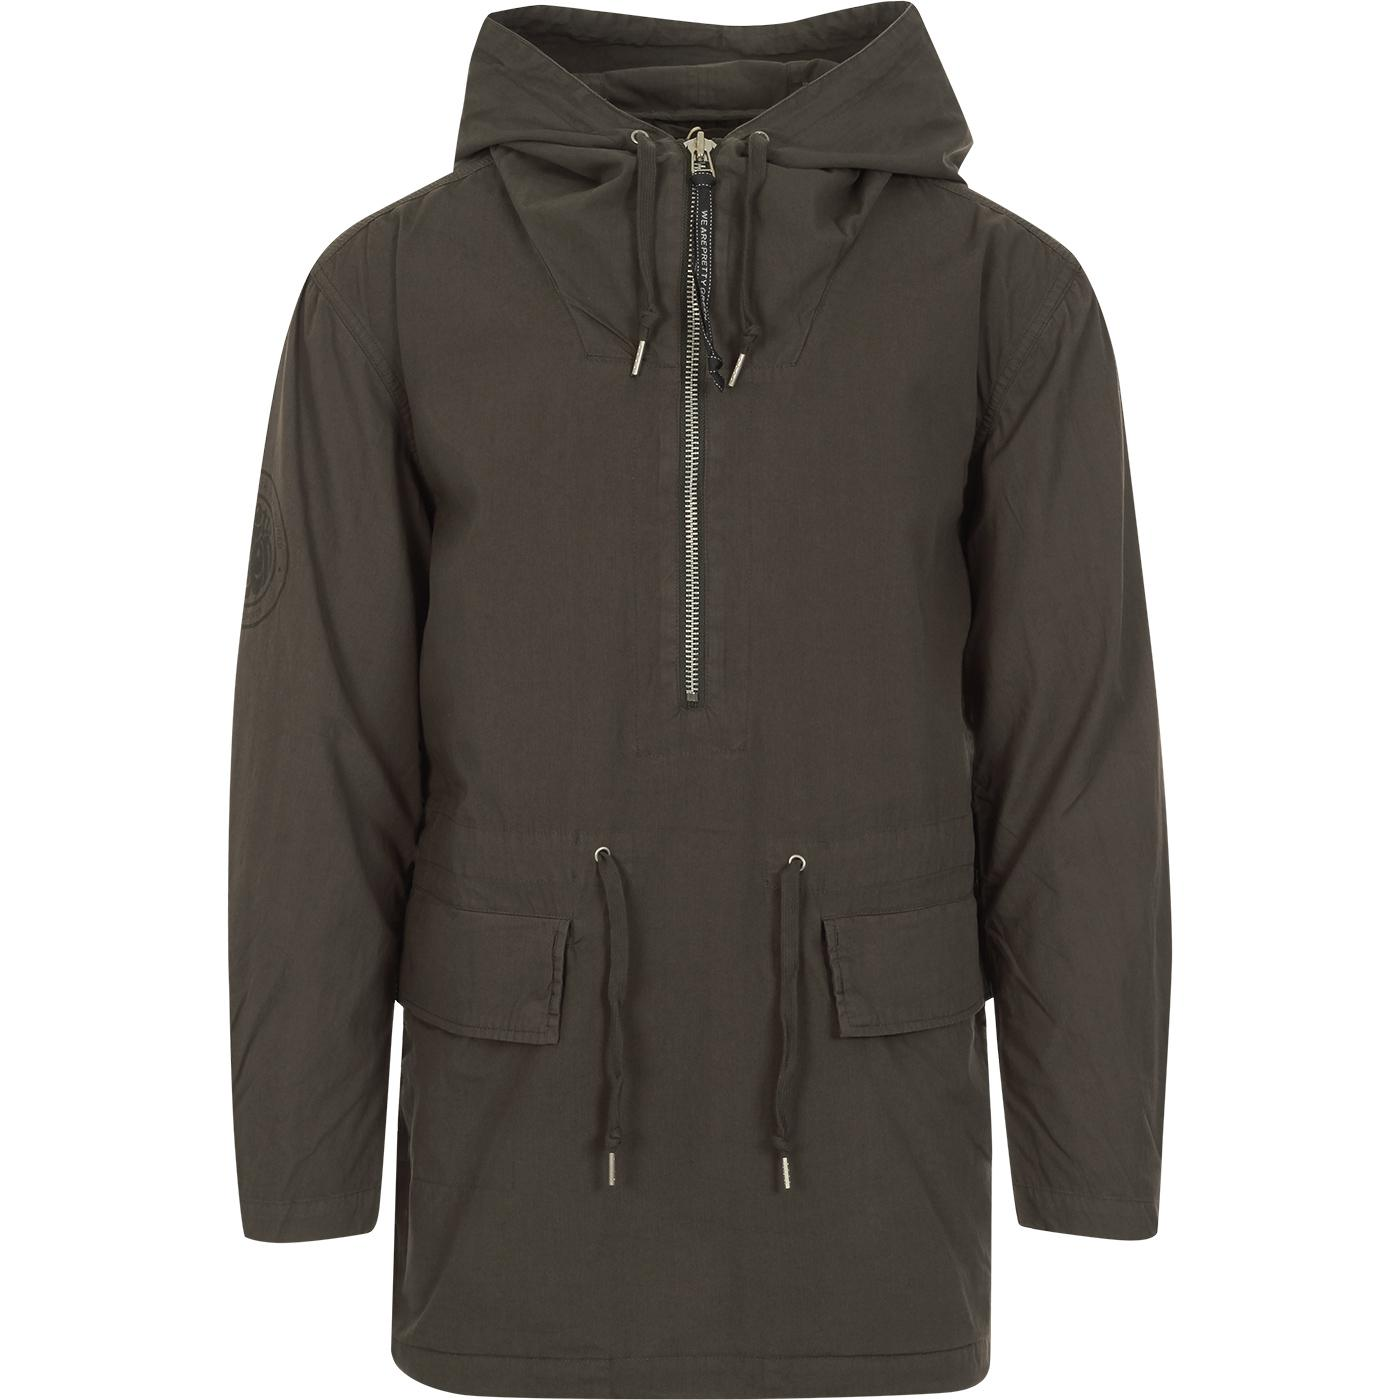 PRETTY GREEN Retro Half Zip Cotton Military Smock